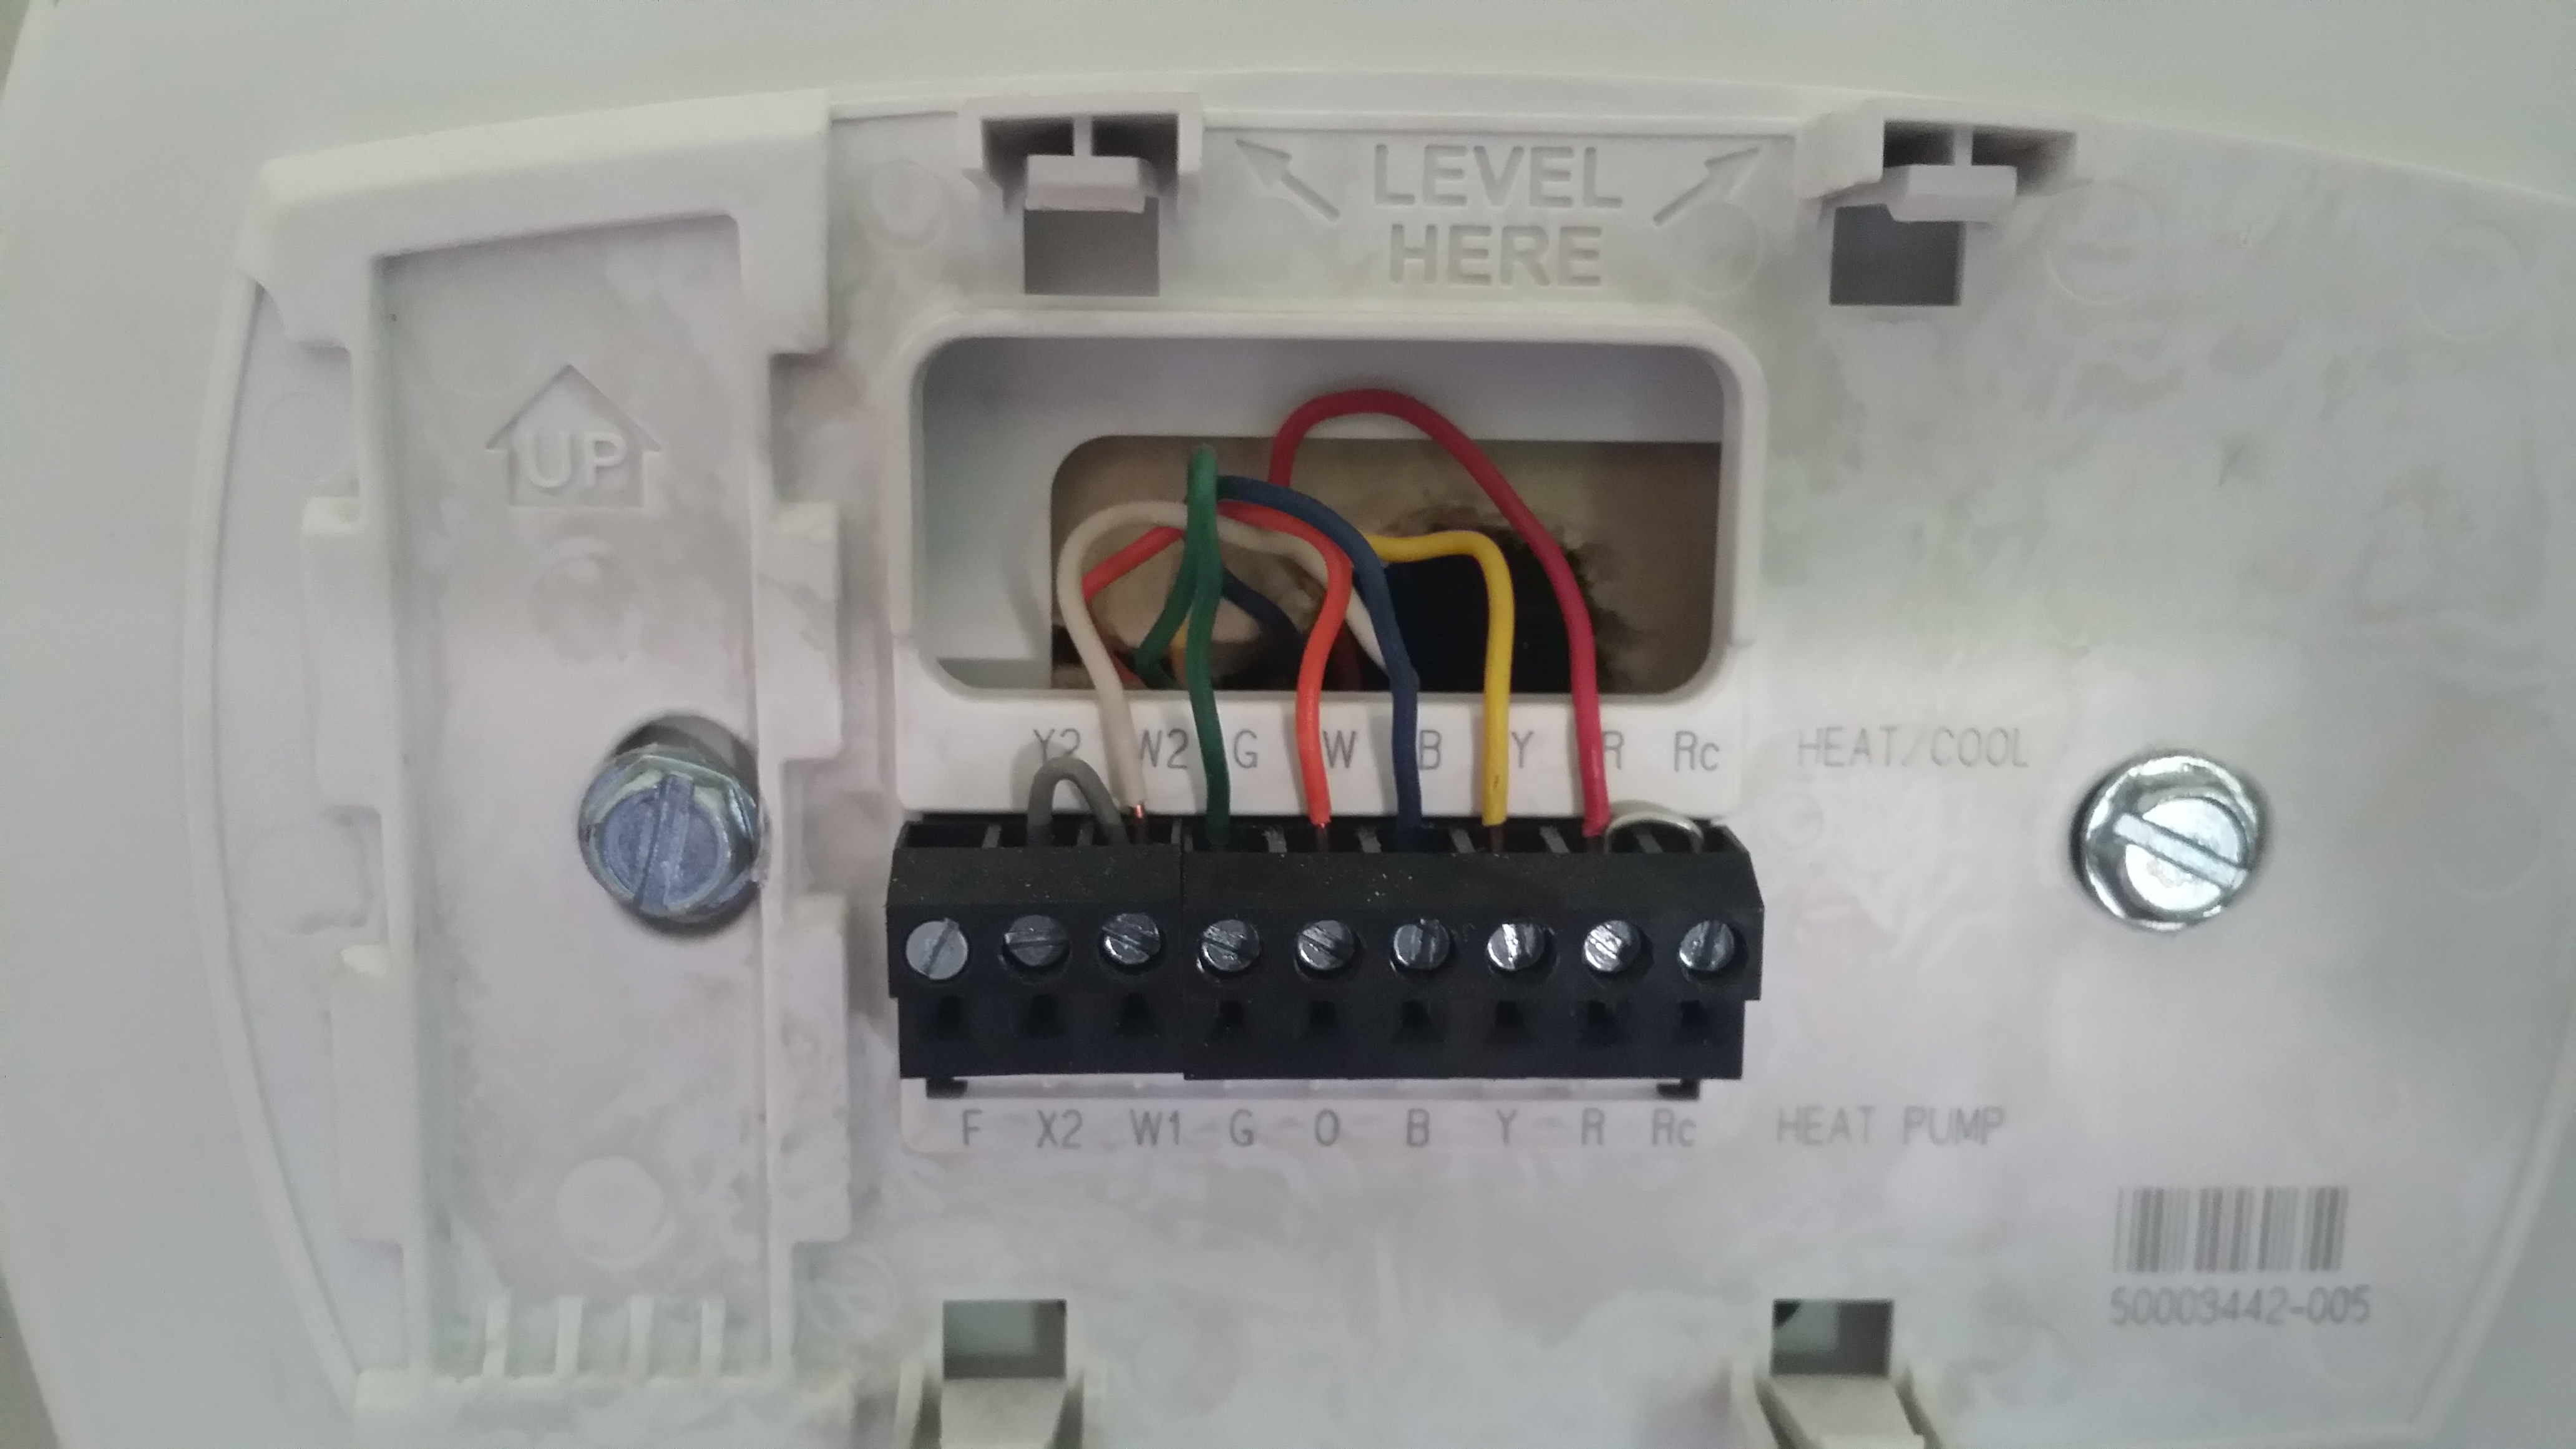 Trying To Wire Honeywell Rth9580Wf To Trane Heat Pump / Ac Unit - Round Nest Thermostat Honeywell Wiring Diagram For Heatpumps With X2 Terminal